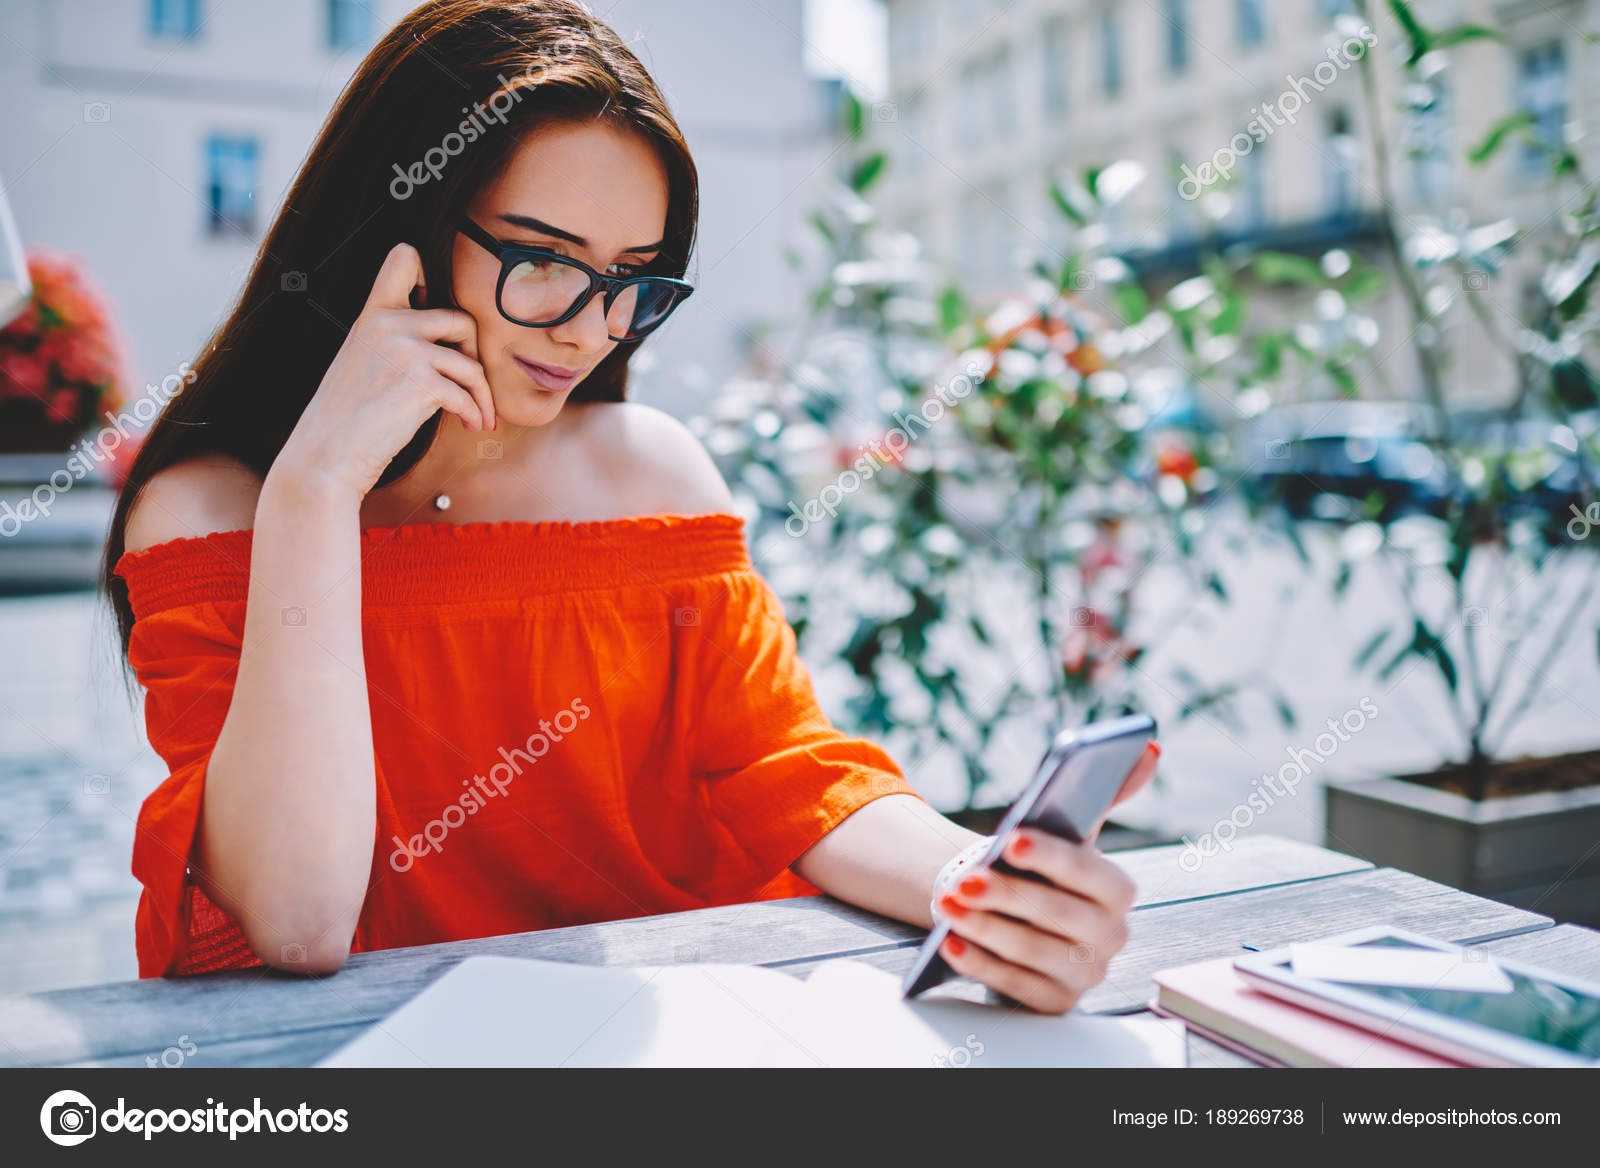 f108f13ec11 Stylish Businesswoman Spectacles Reading Interesting News Internet Website  High Speed — Stock Photo